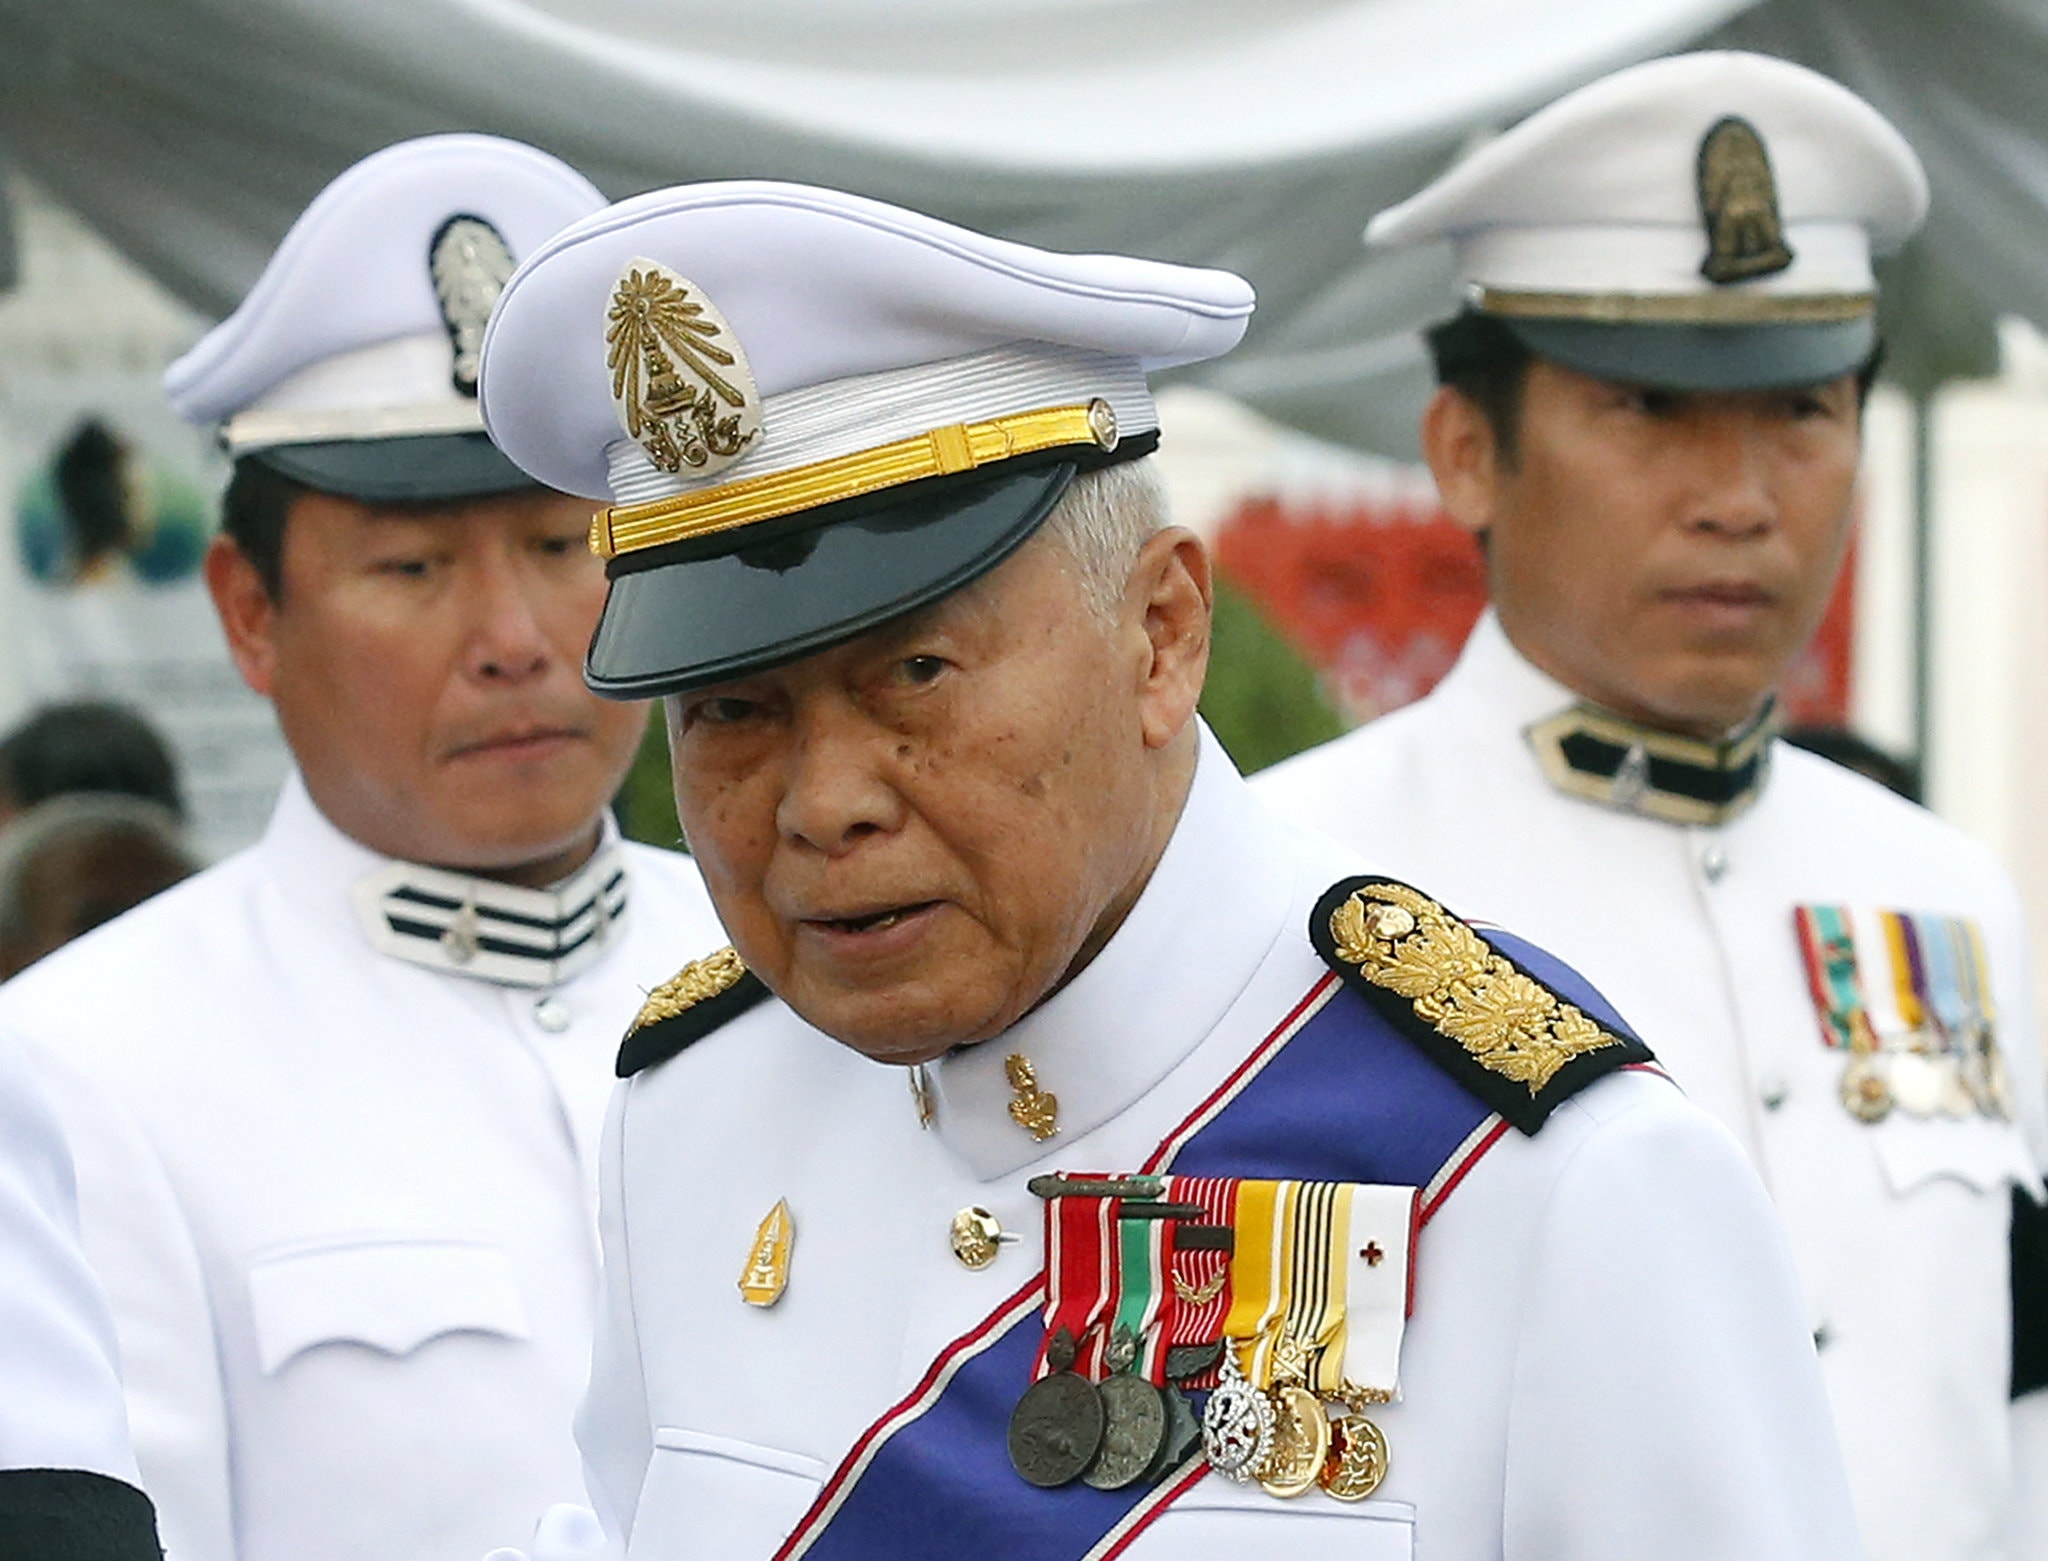 Former Prime Minister Prem Tinsulanonda of Thailand in Bangkok in 2016. As prime minister from 1980 to 1988, he often served as a proxy for the king and weathered two coup attempts.